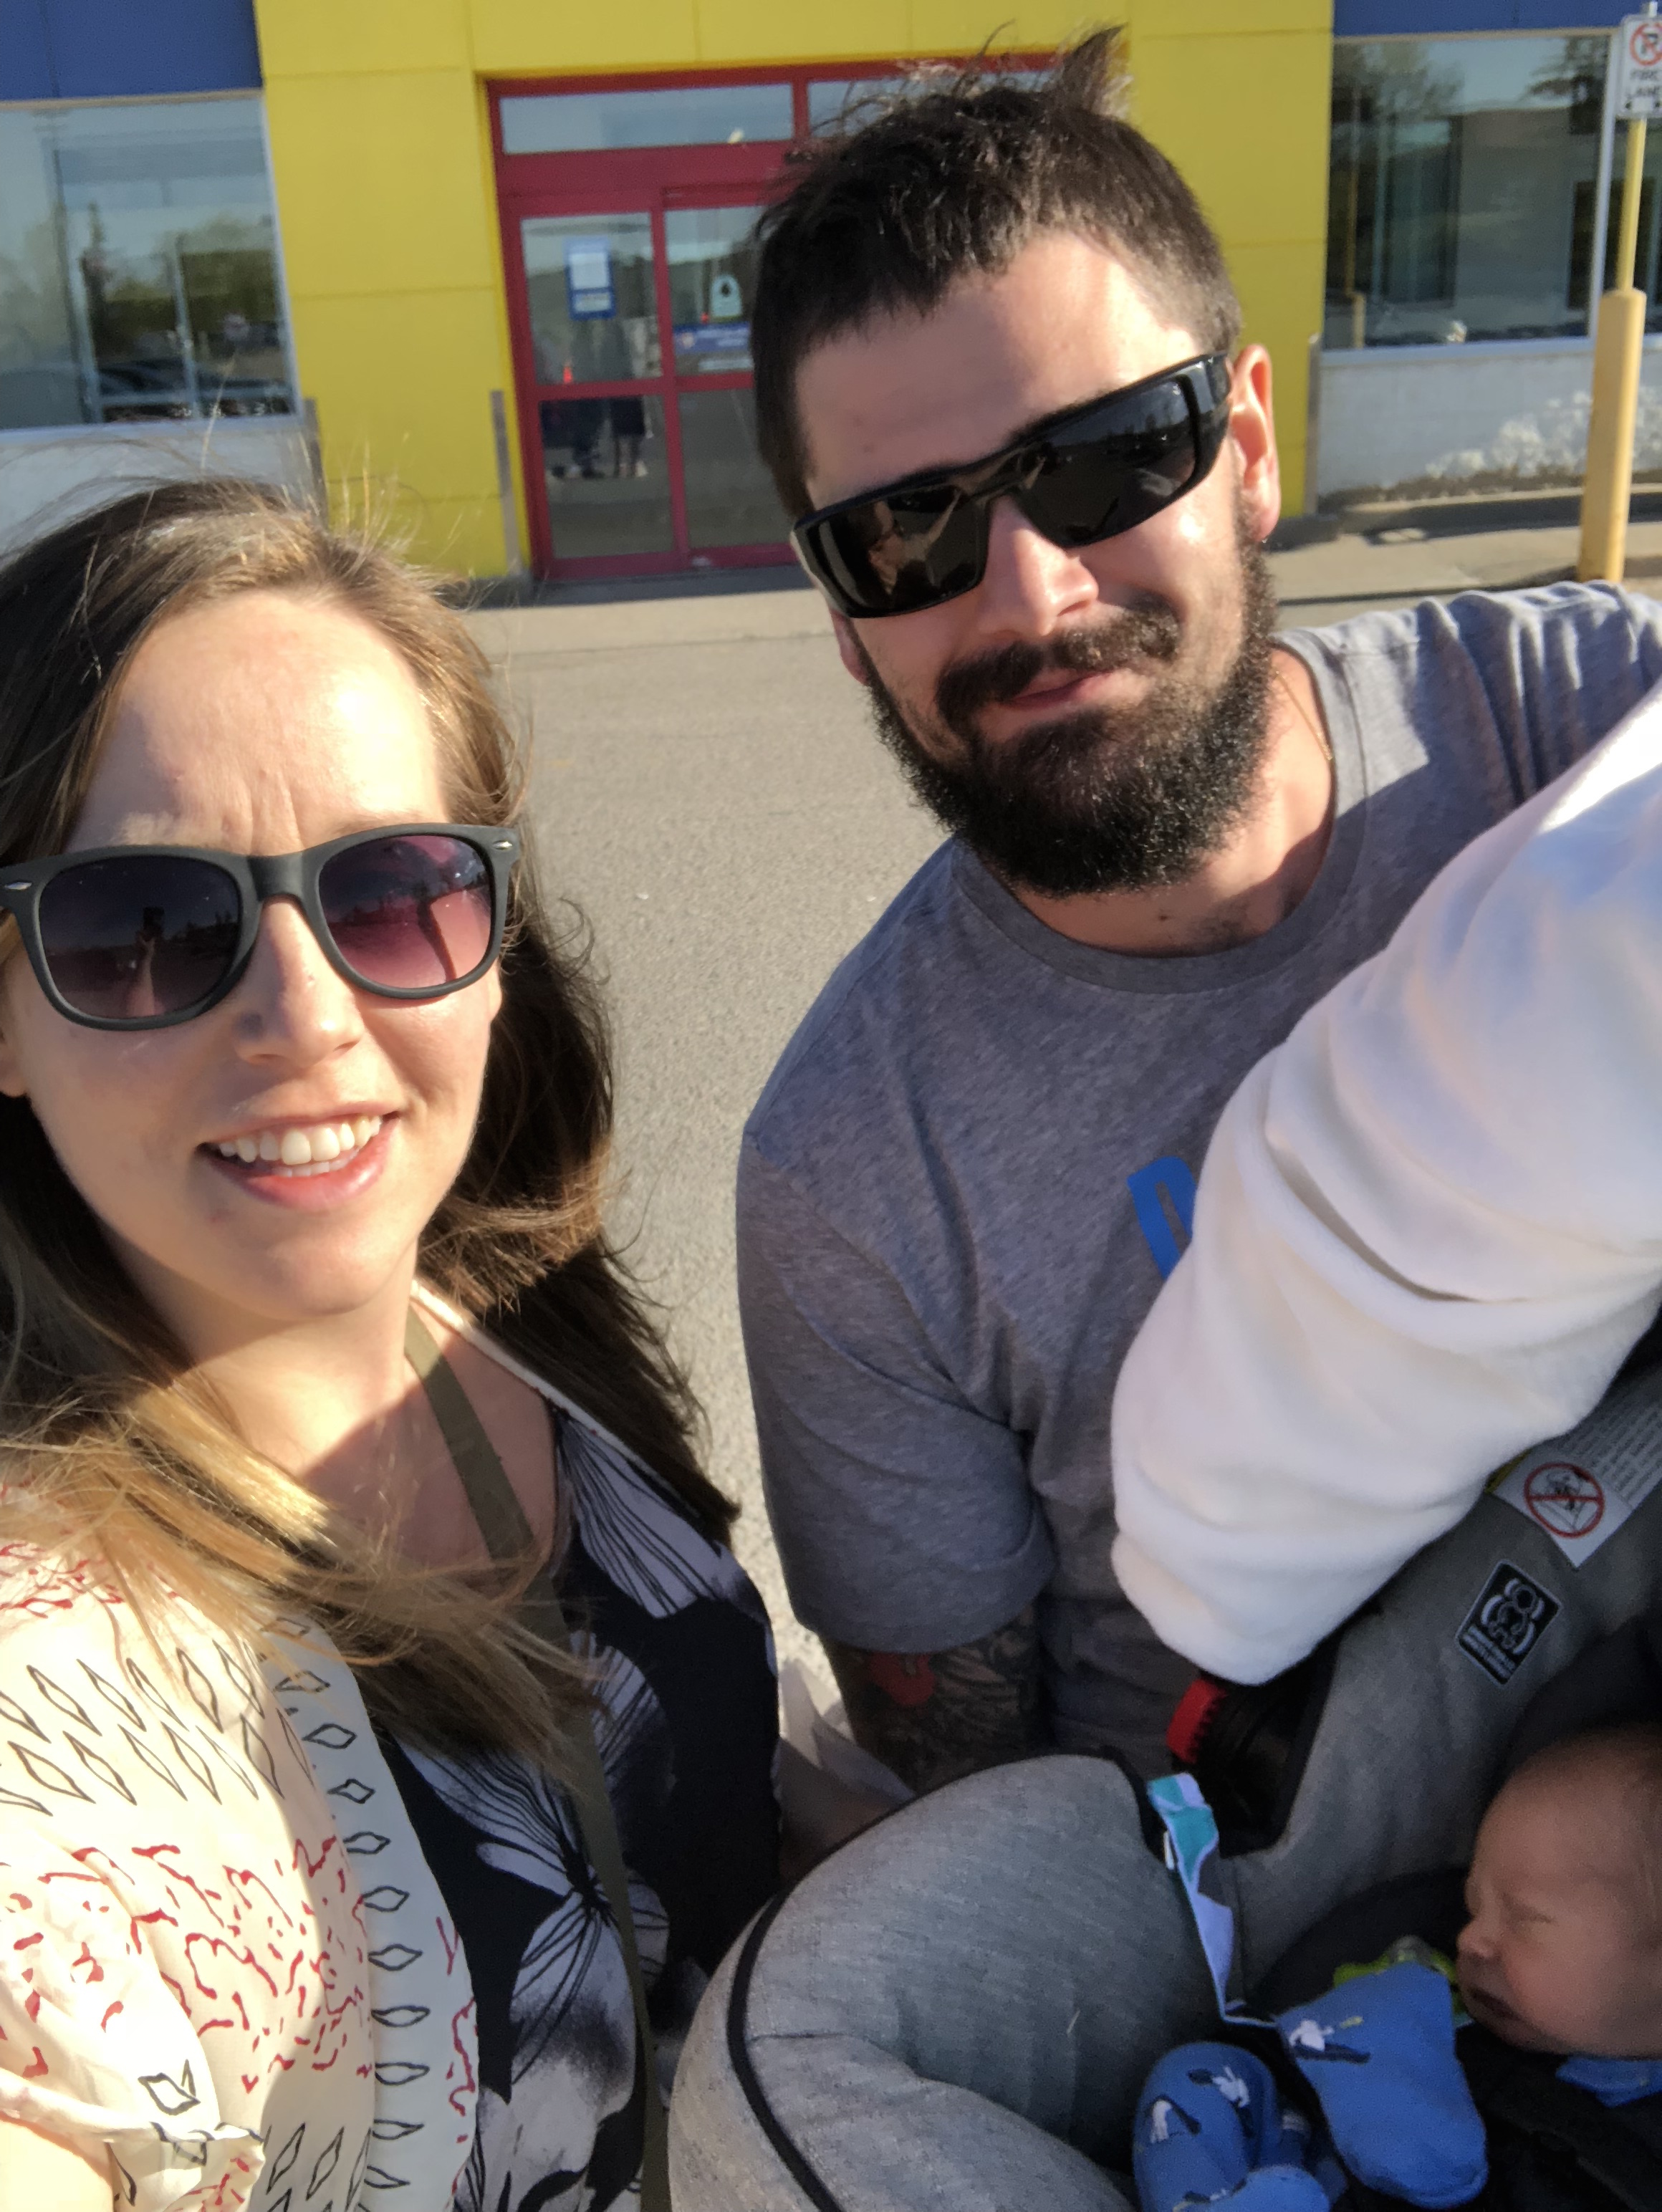 First family outing to Toys R' Us